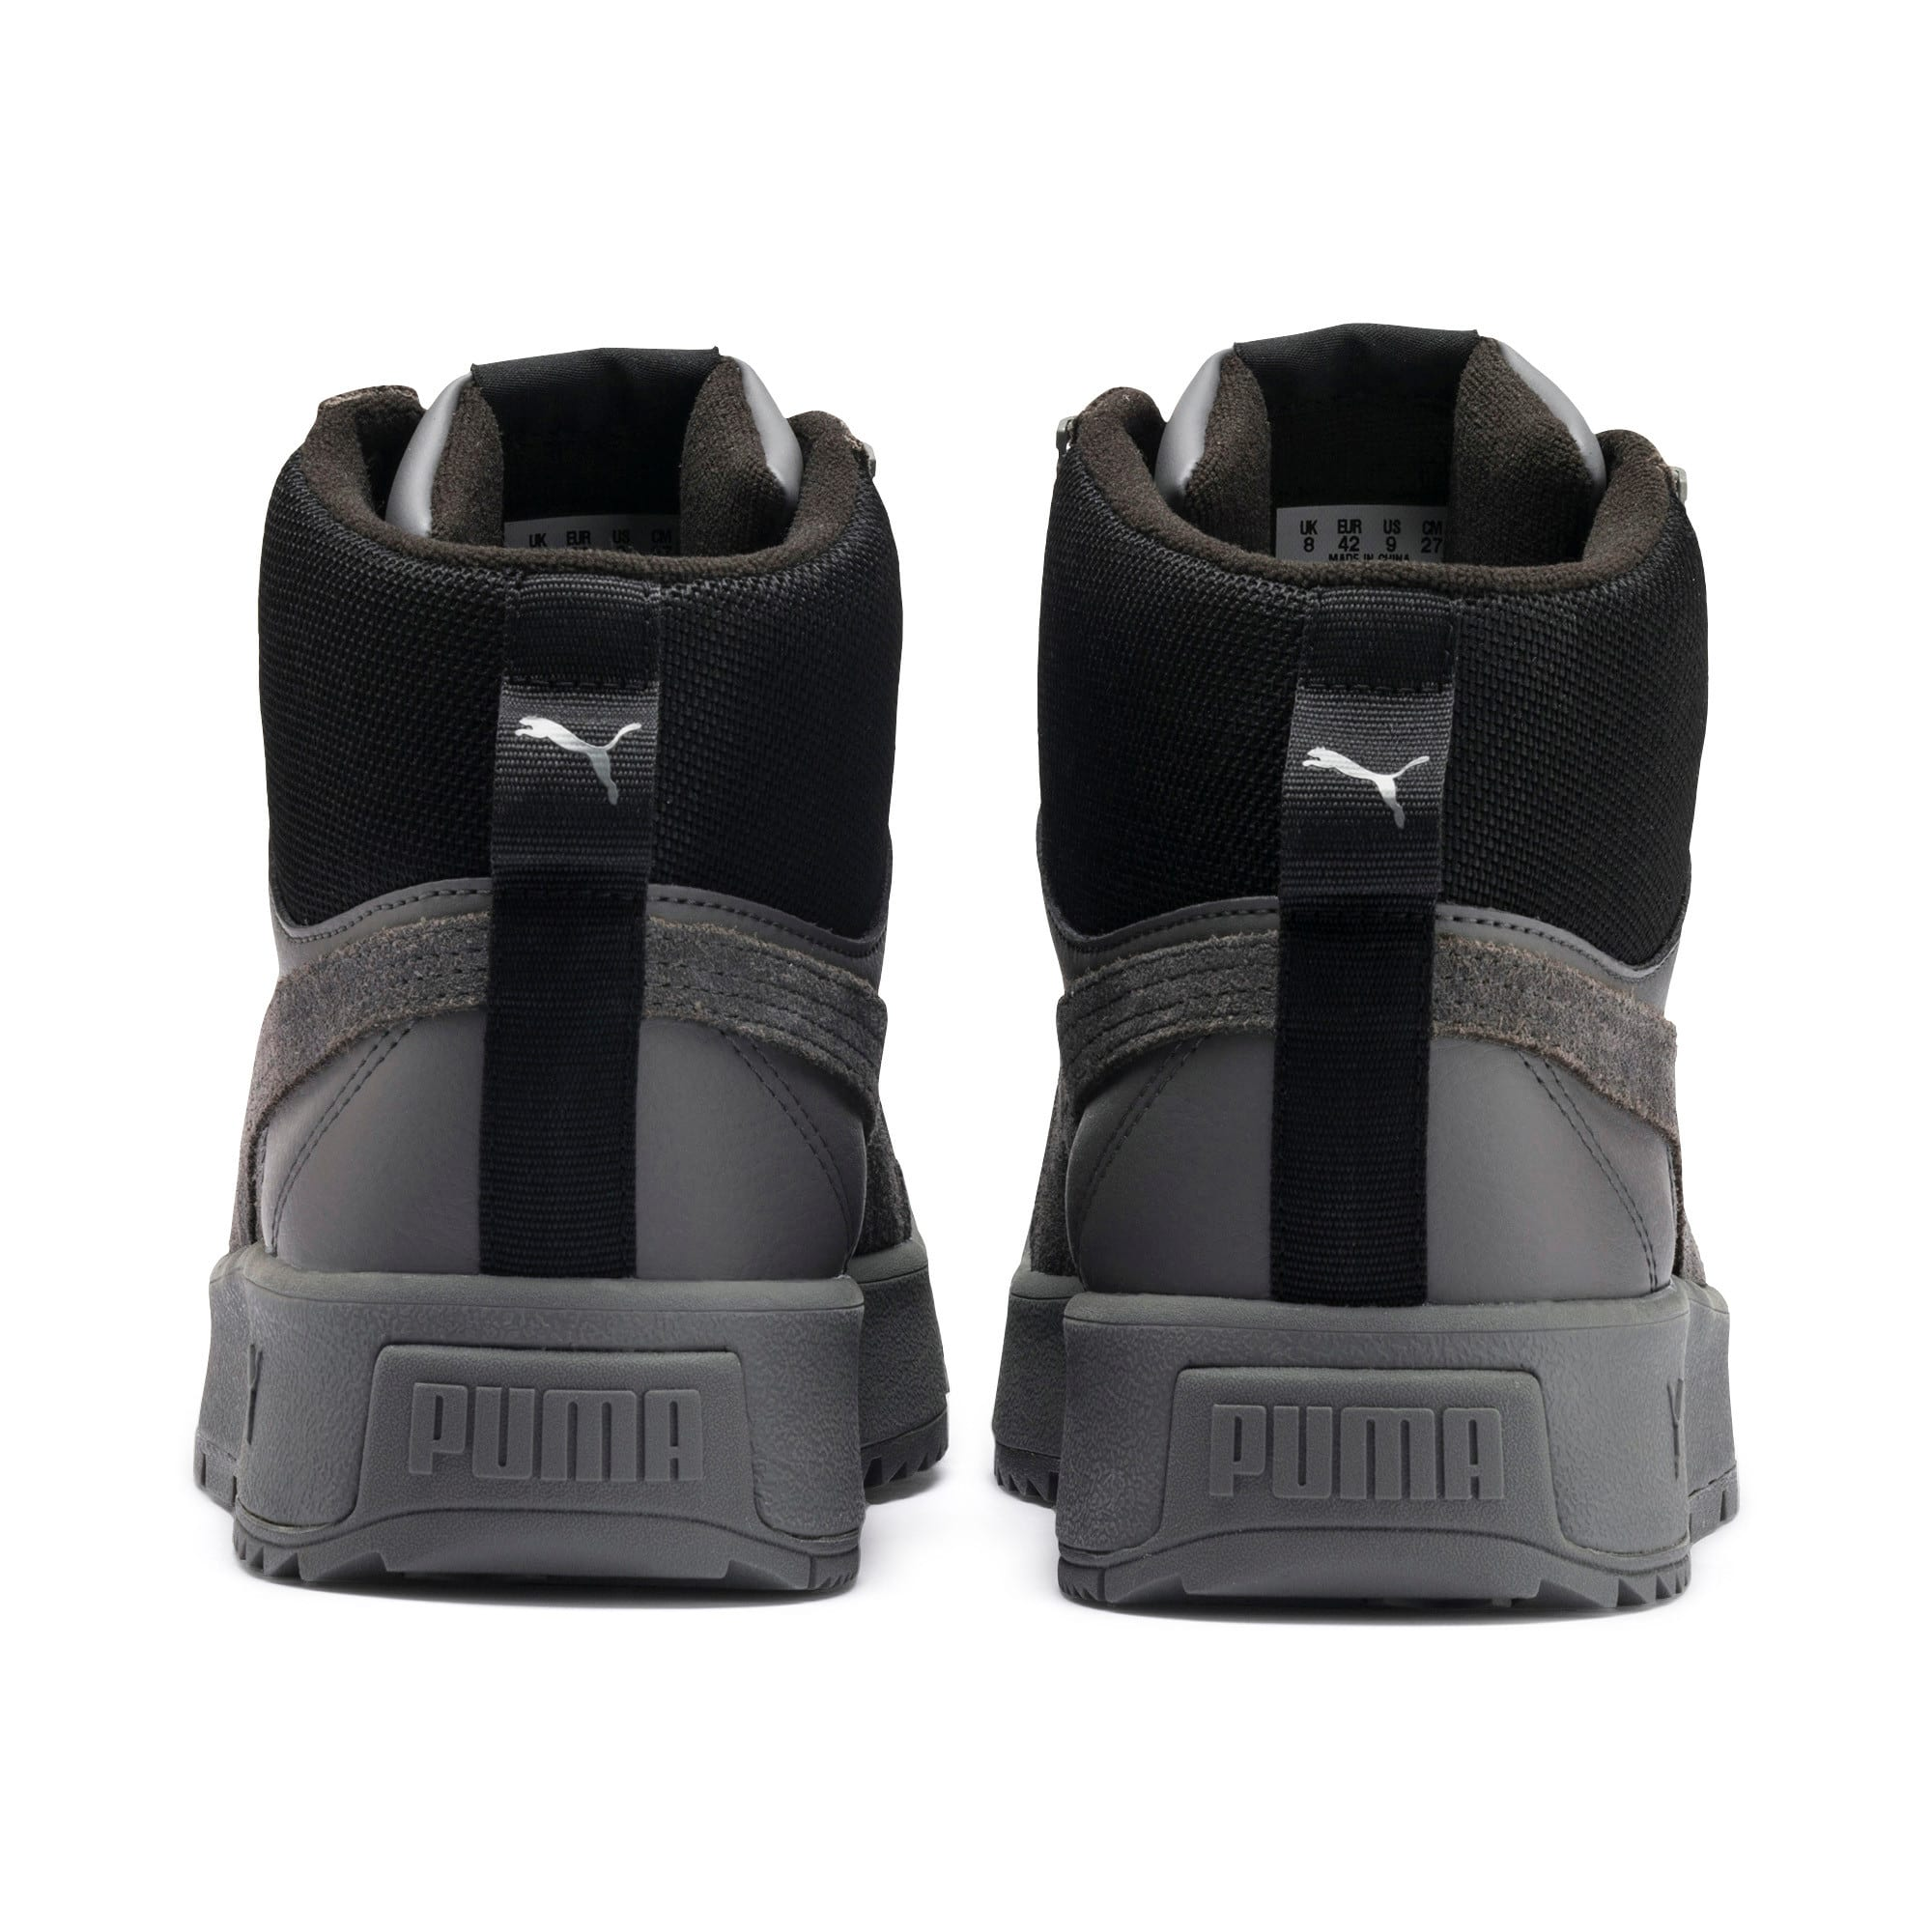 Thumbnail 4 of Tarrenz Sneaker Boots, CASTLEROCK-Puma Black, medium